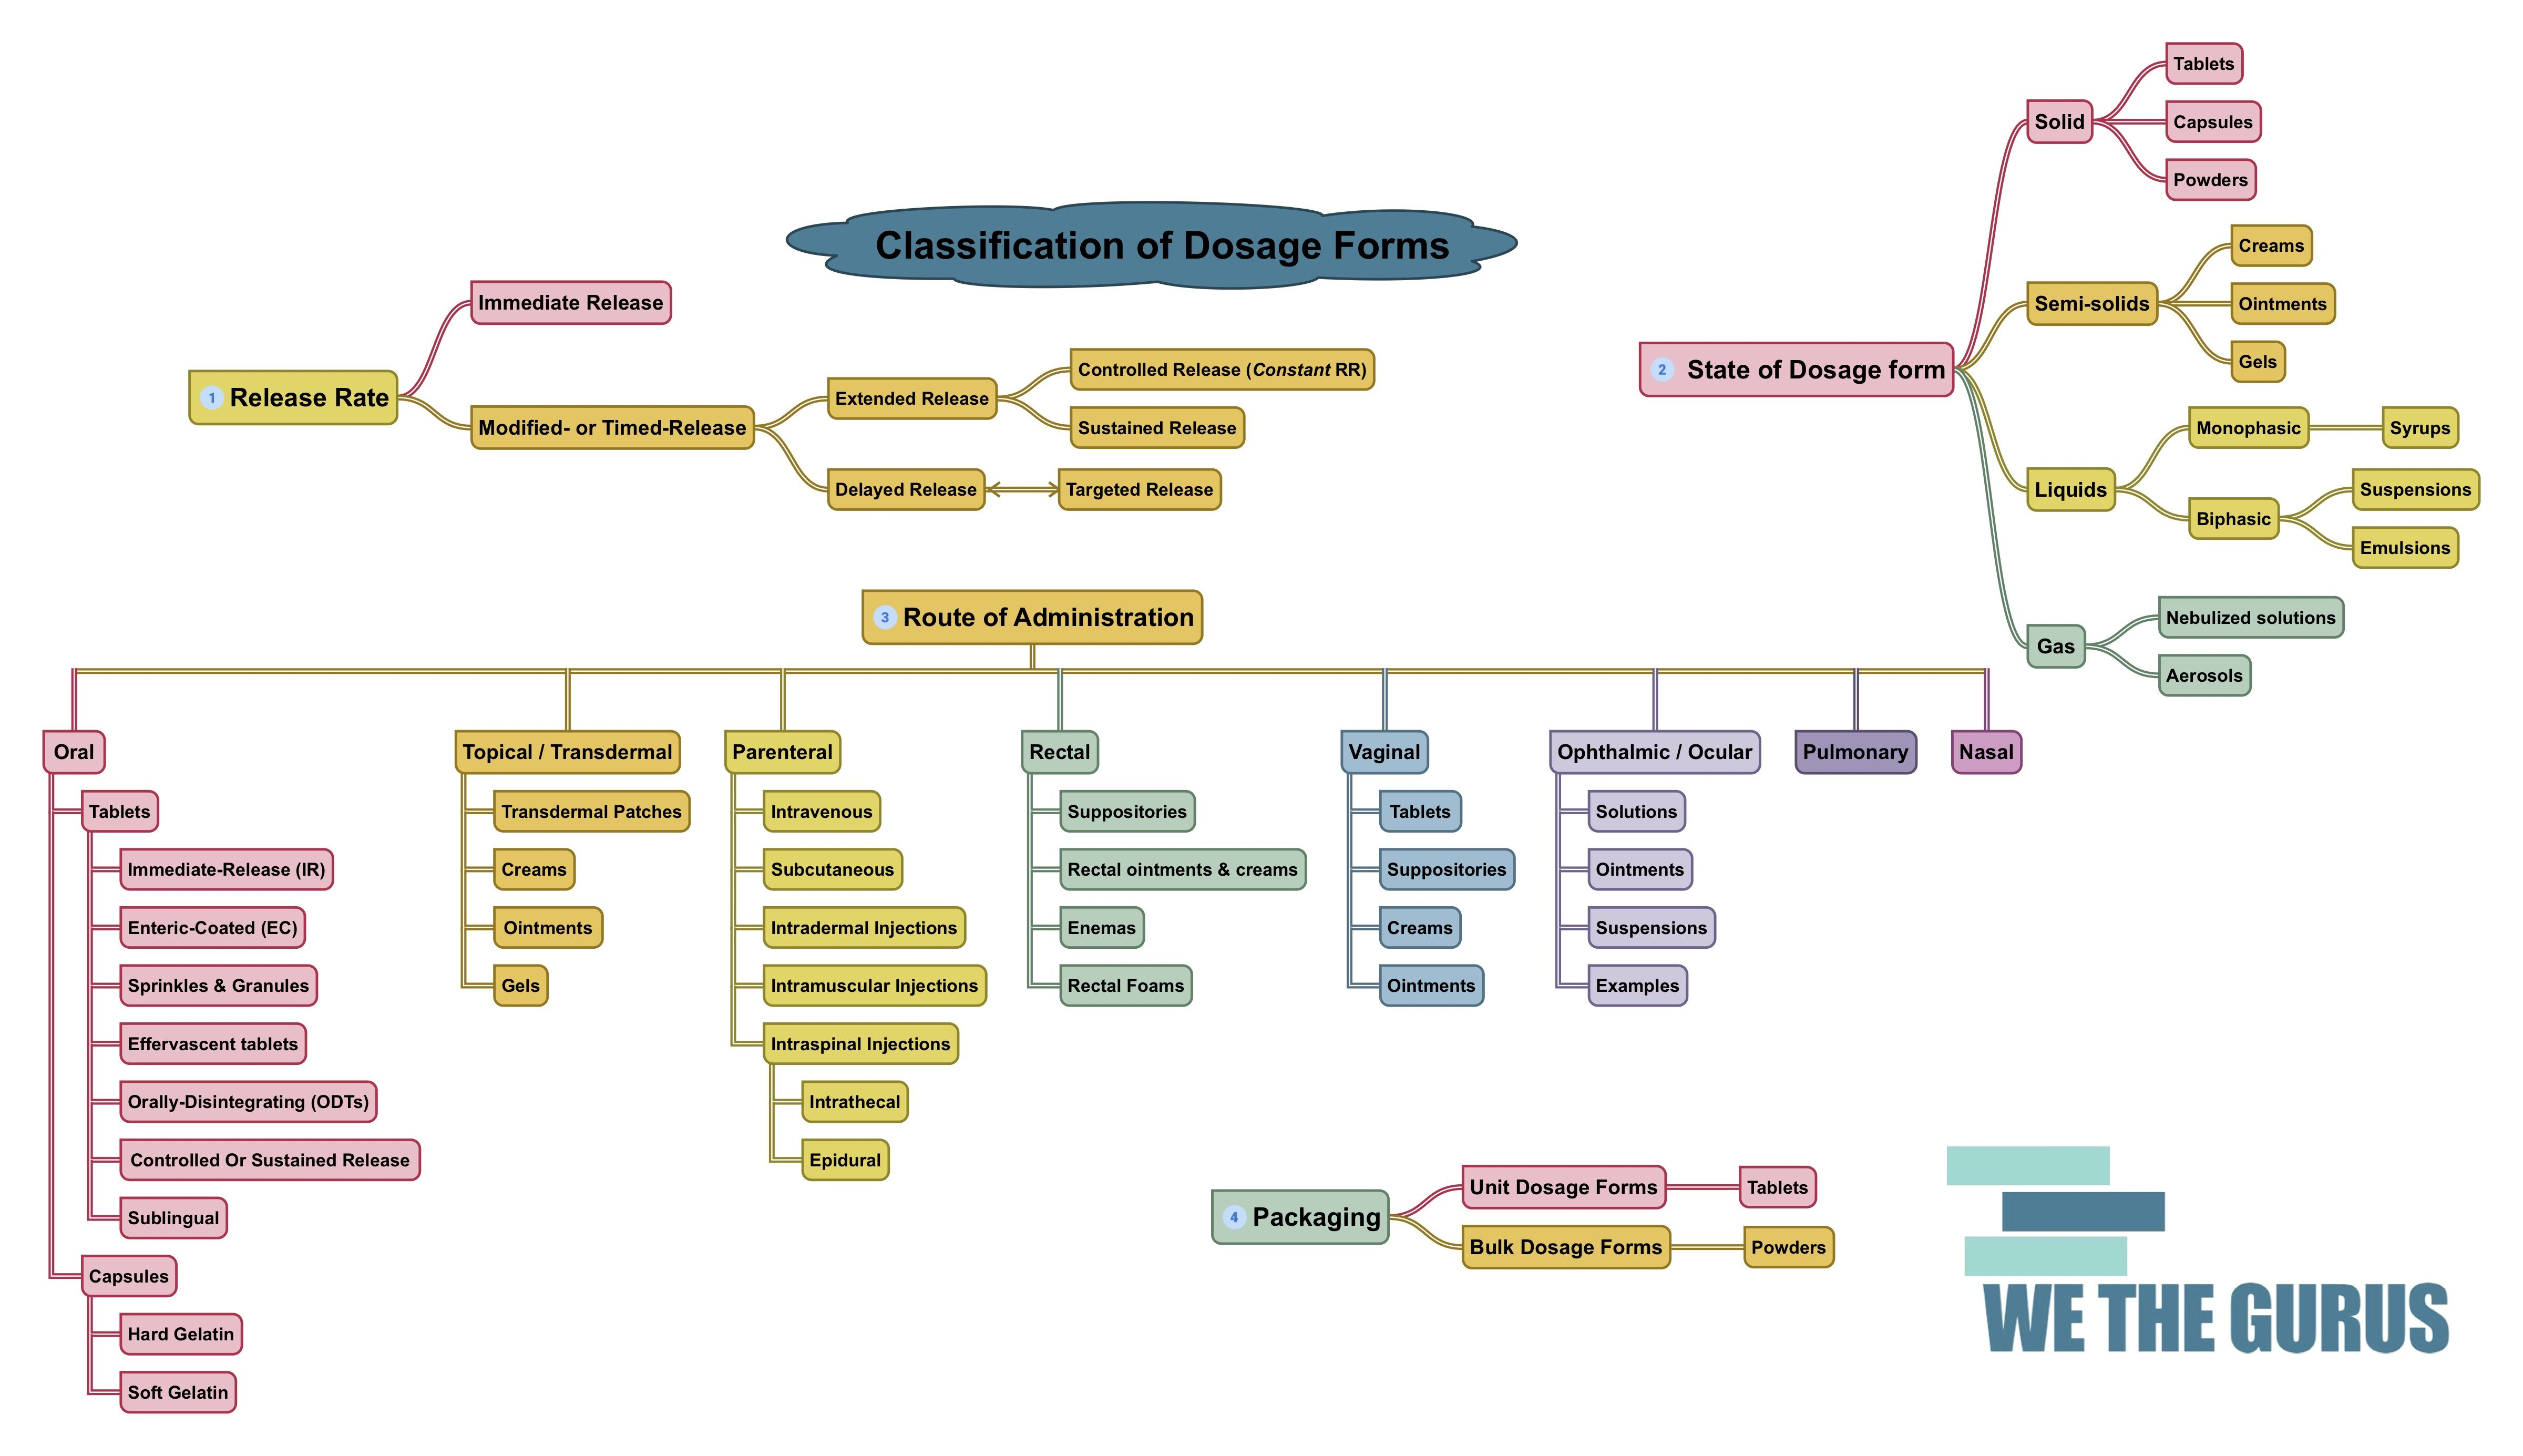 Mind Map Of Ways To Classify Dosage Forms Useful For Pharmacy